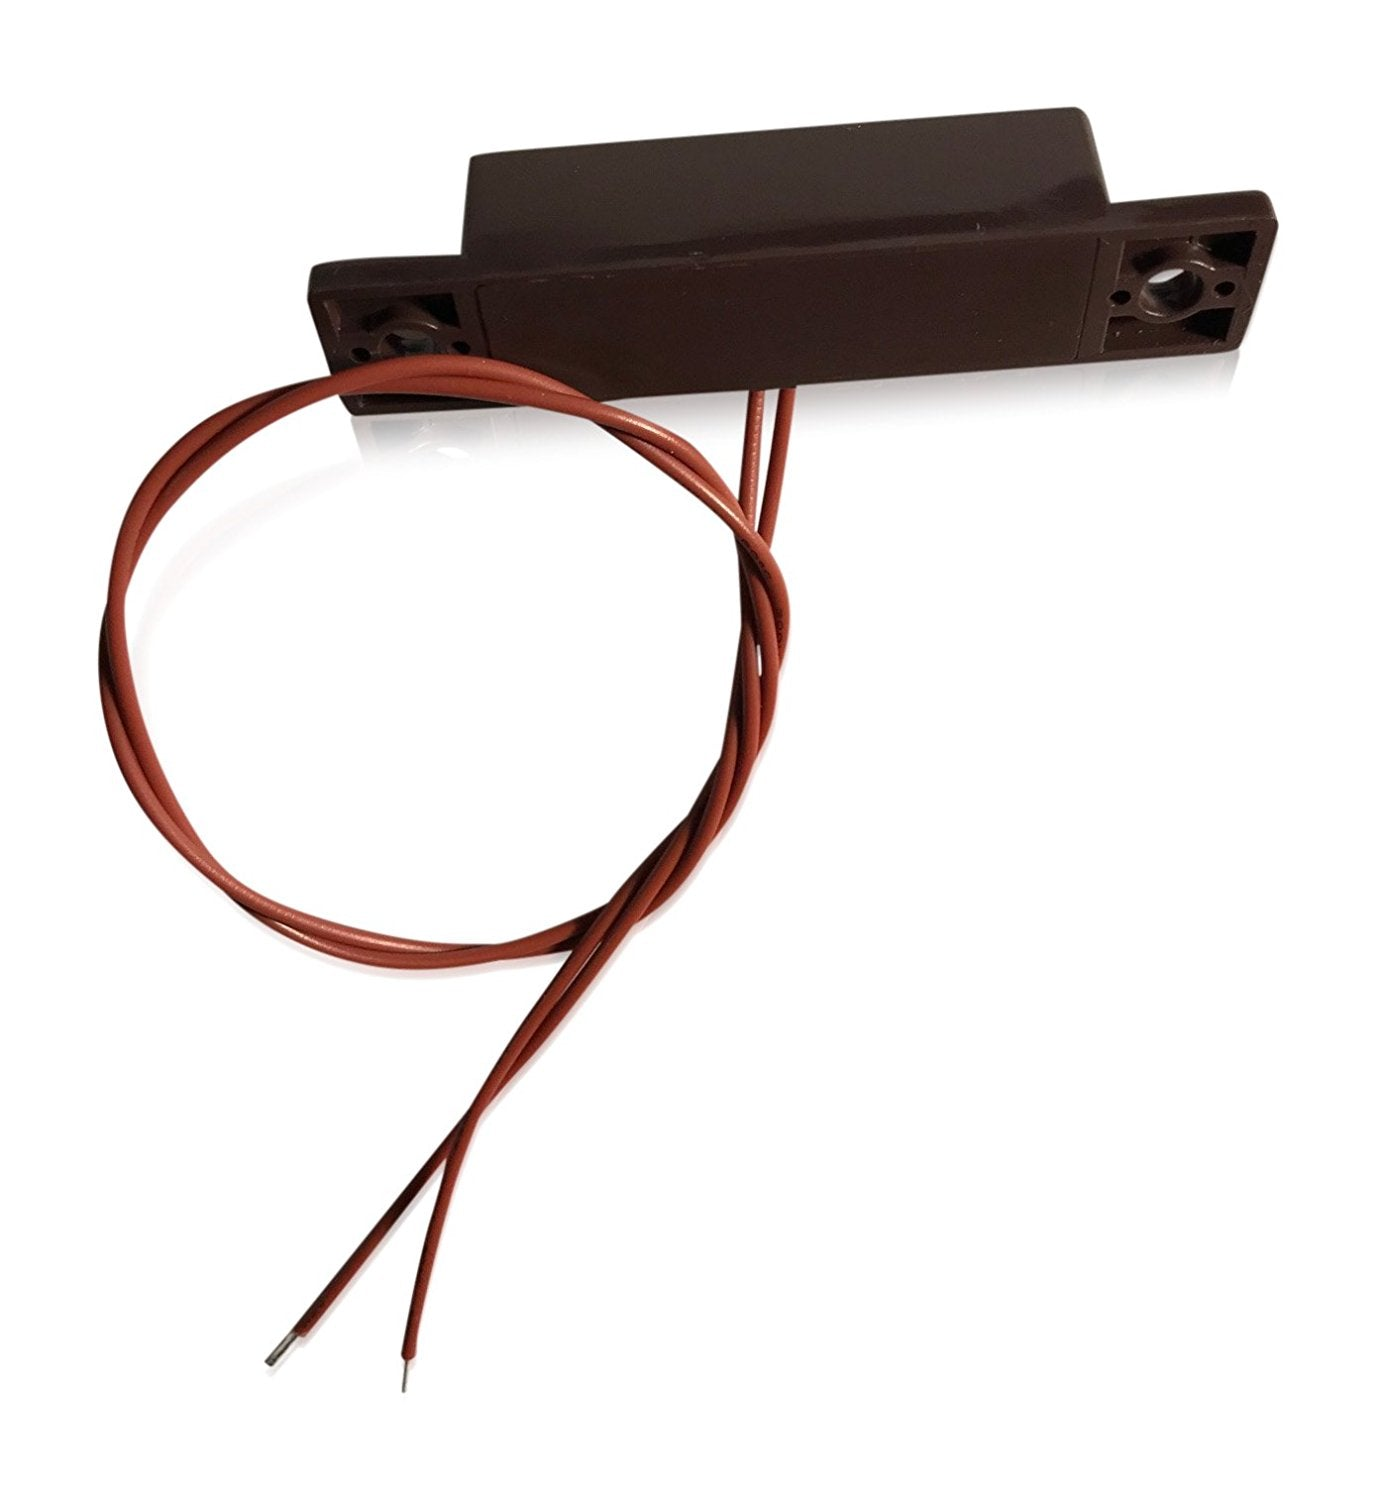 "3 pcs Brown Wired Door Contacts Surface Mount NC Security Alarm Door Window Sensors.These ¾"" Door Contact Position switches (DCS) Work with All Access Control and Burglar Alarm Systems"